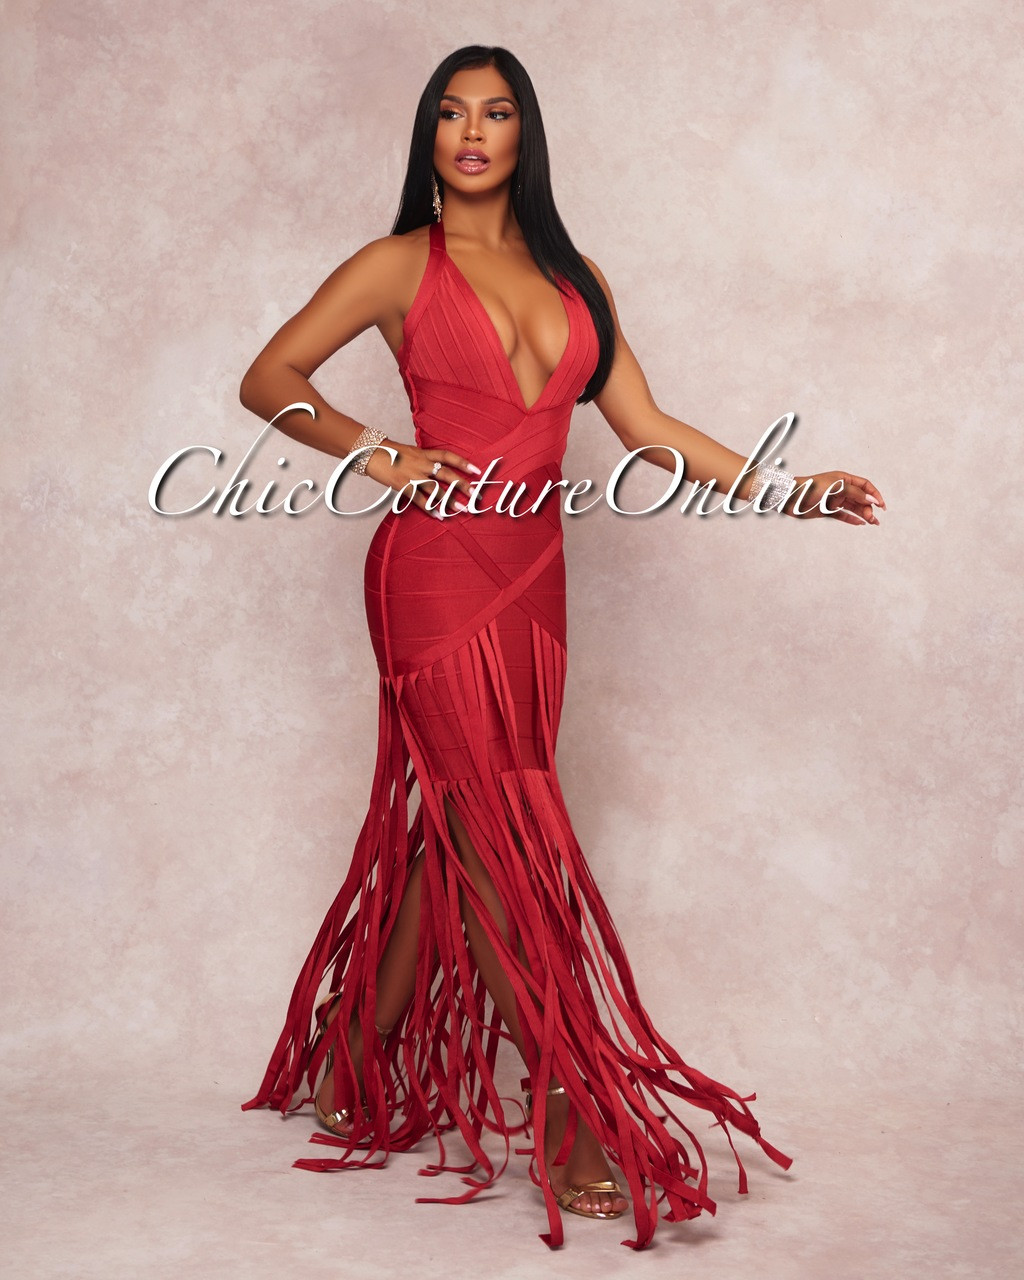 trixia paprika red bandage fringe halter dress